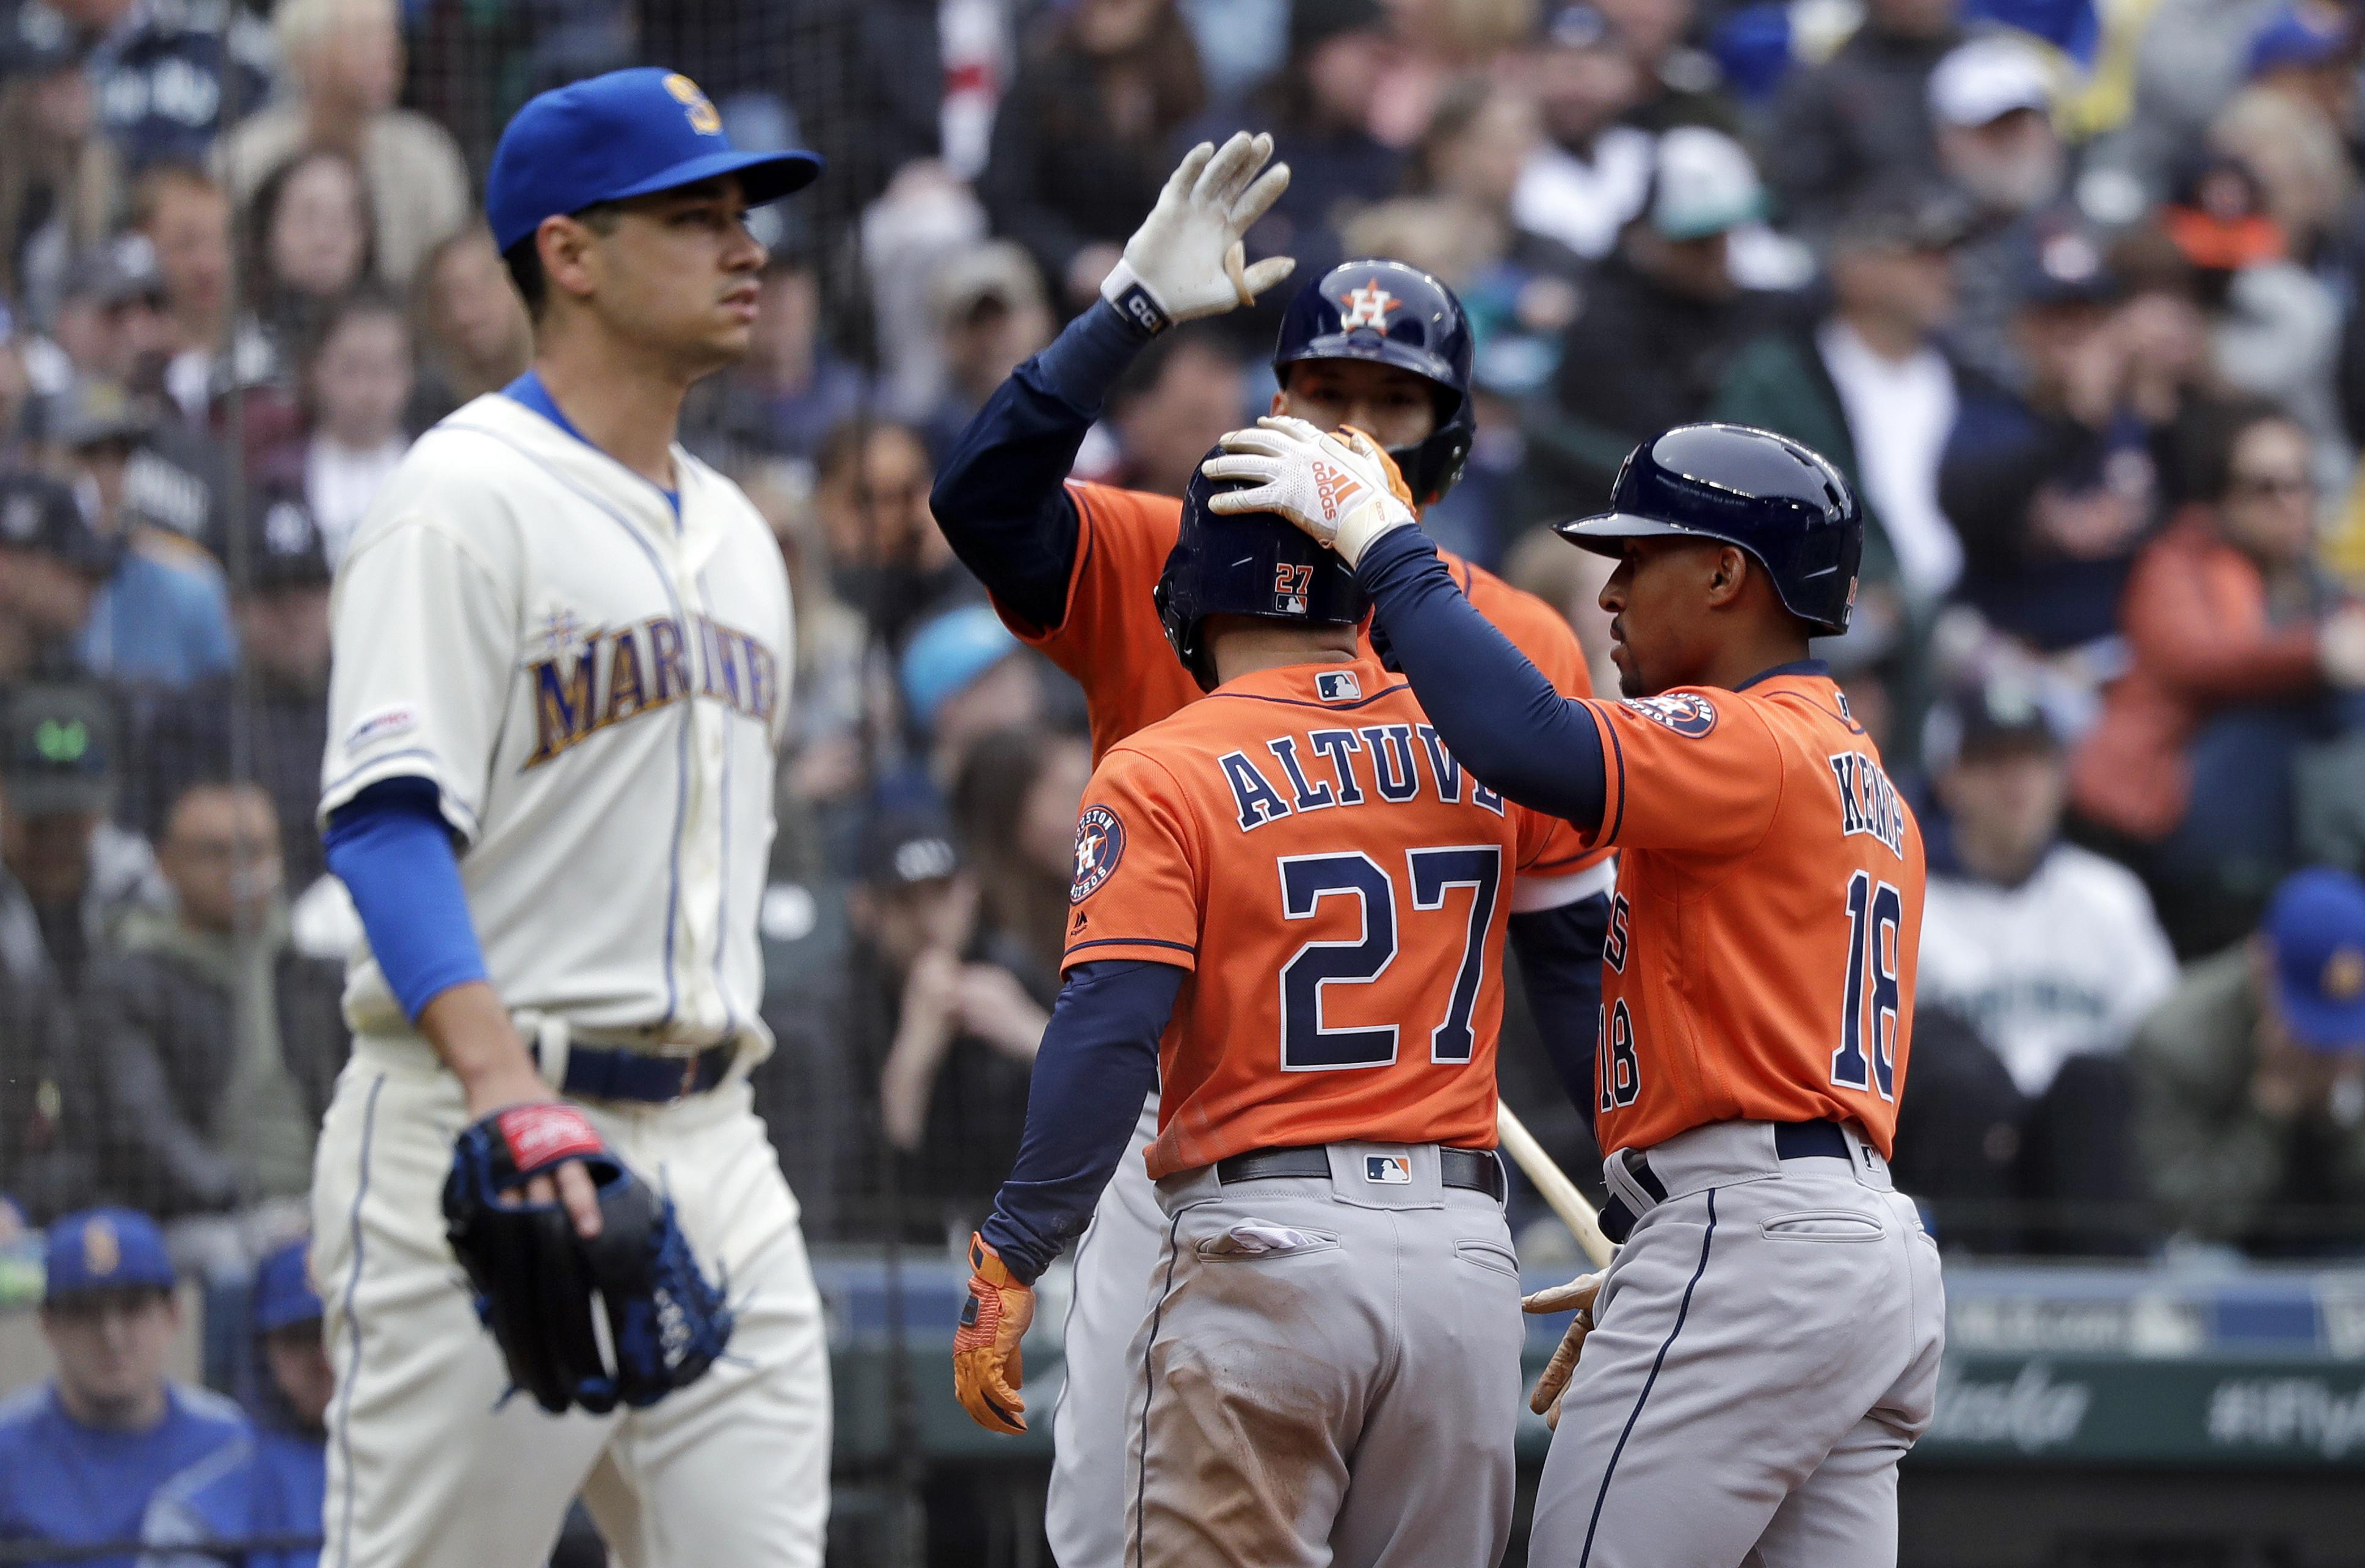 newest e3c6e df835 Mariners lose 3-2 as Houston Astros complete three-game ...